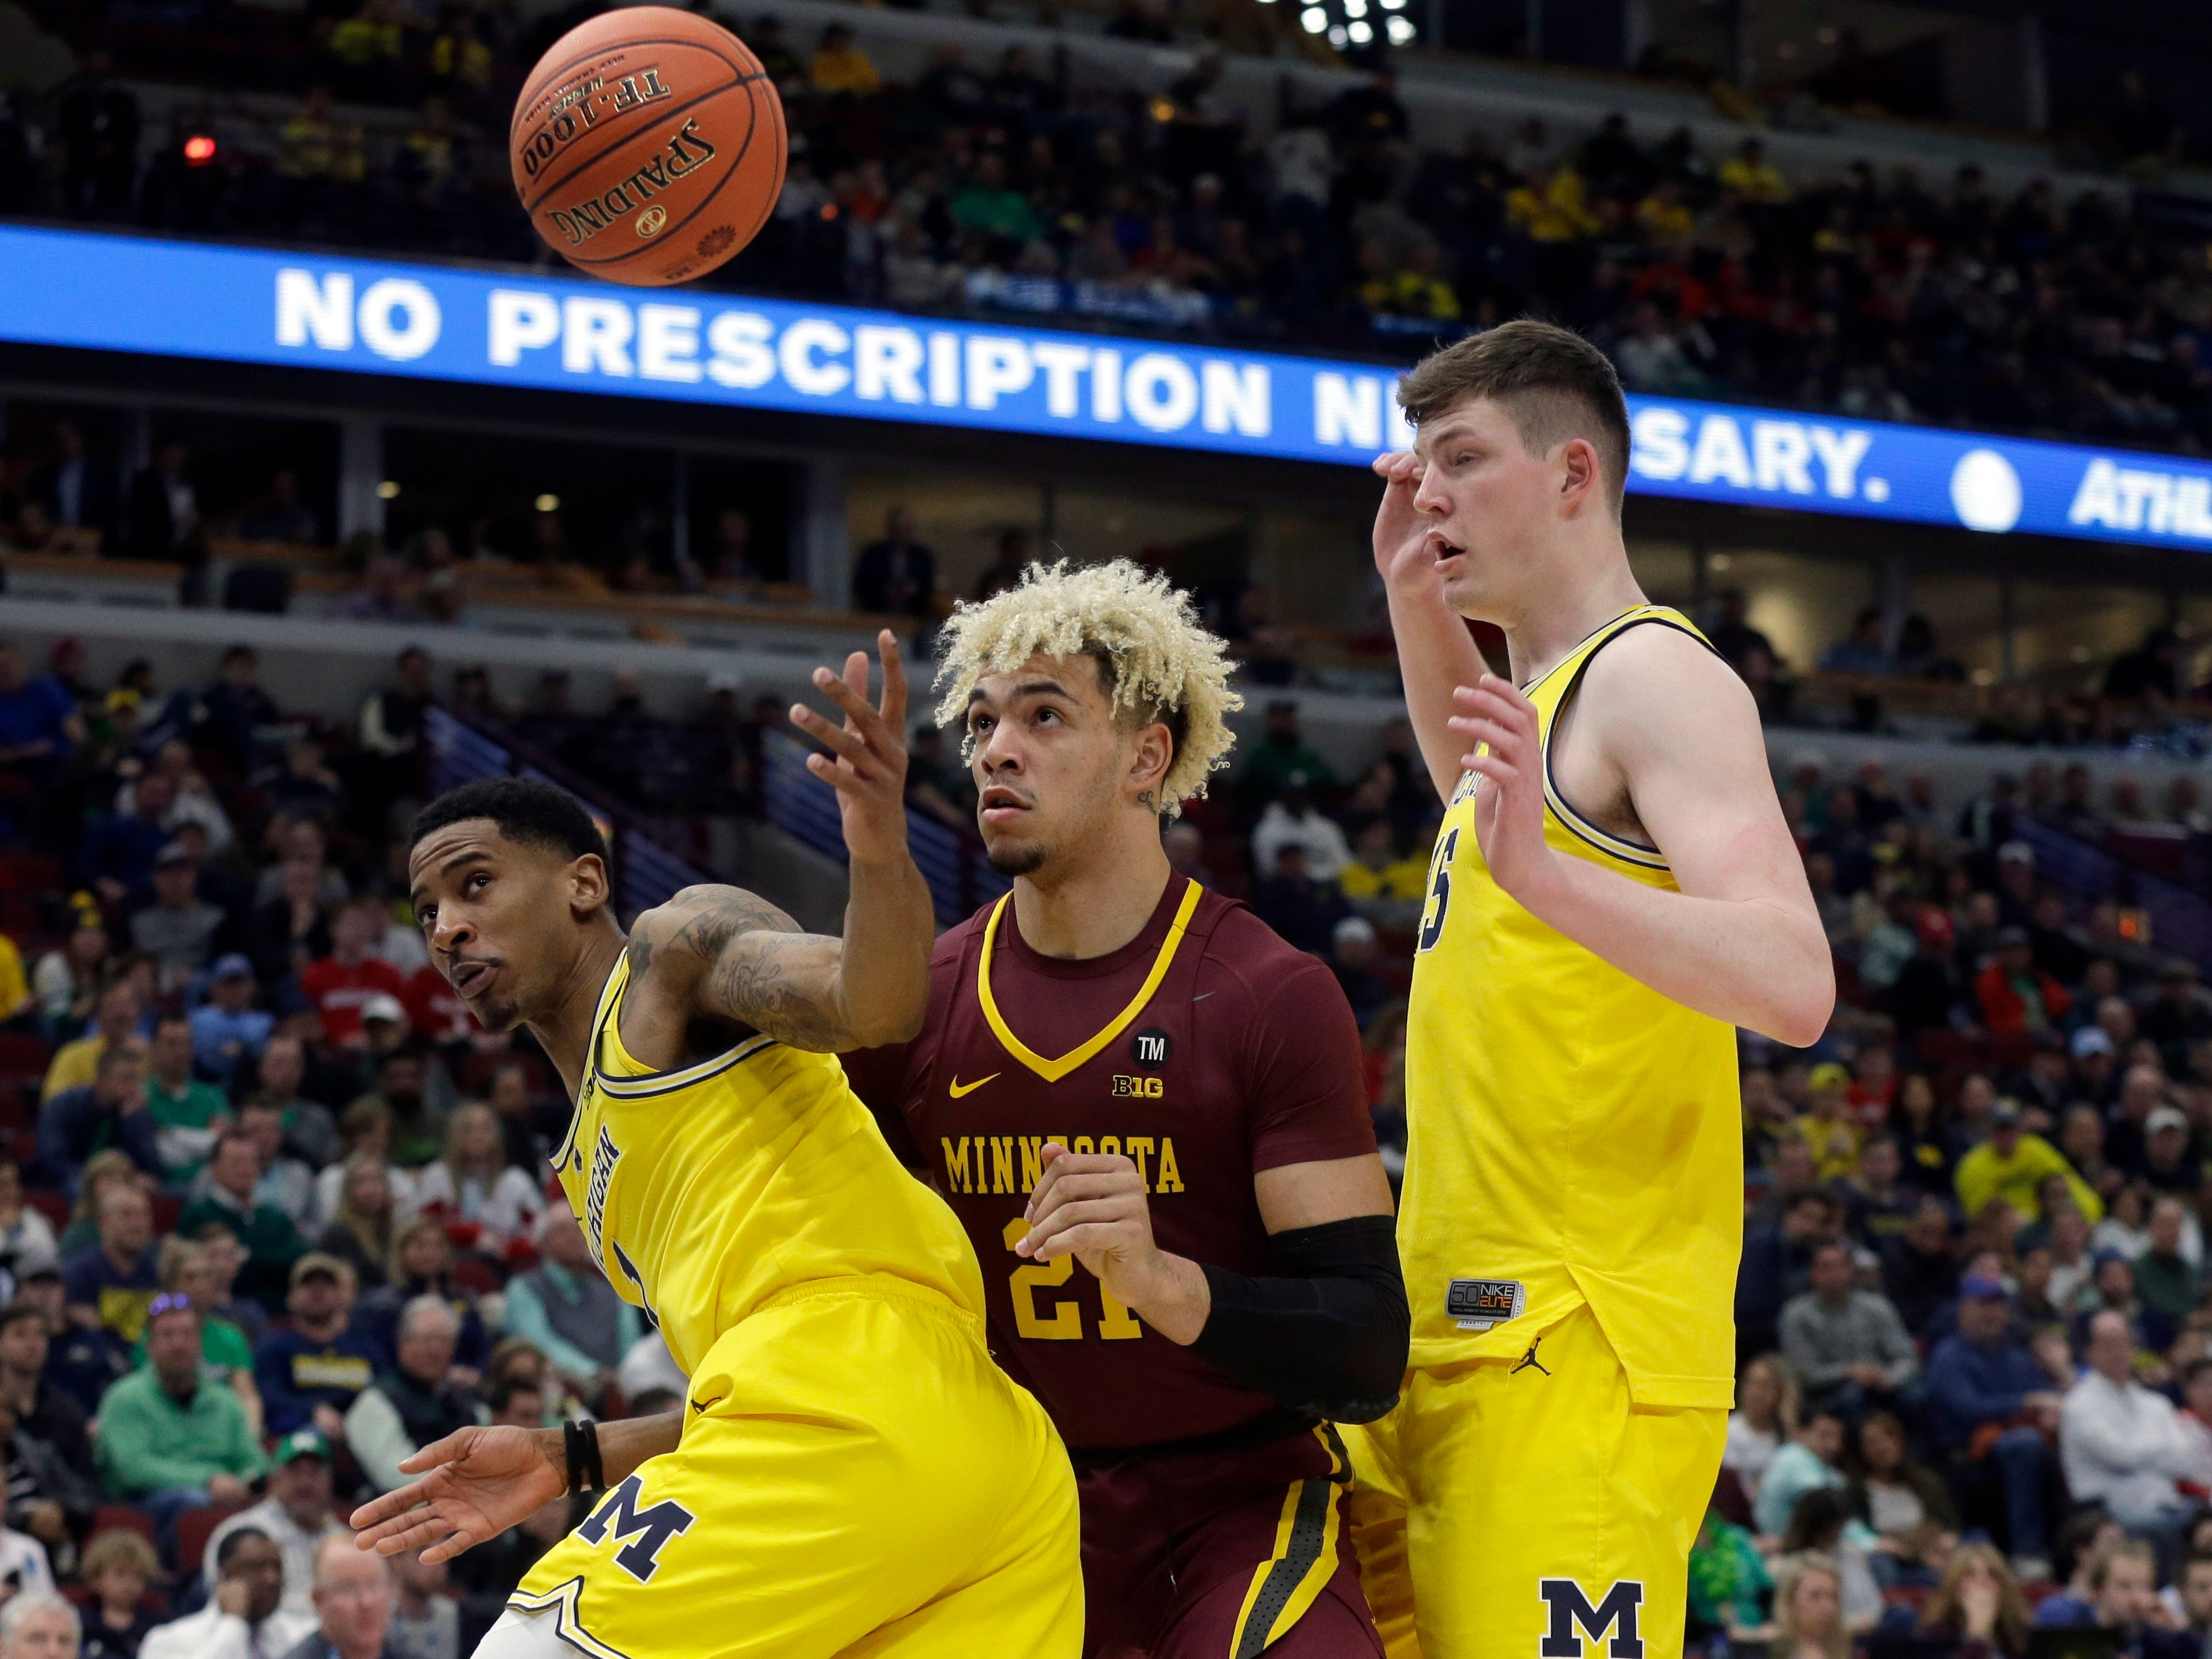 From left, Michigan's Charles Matthews, Minnesota's Jarvis Omersa and Michigan's Jon Teske look for the loose ball during the second half.